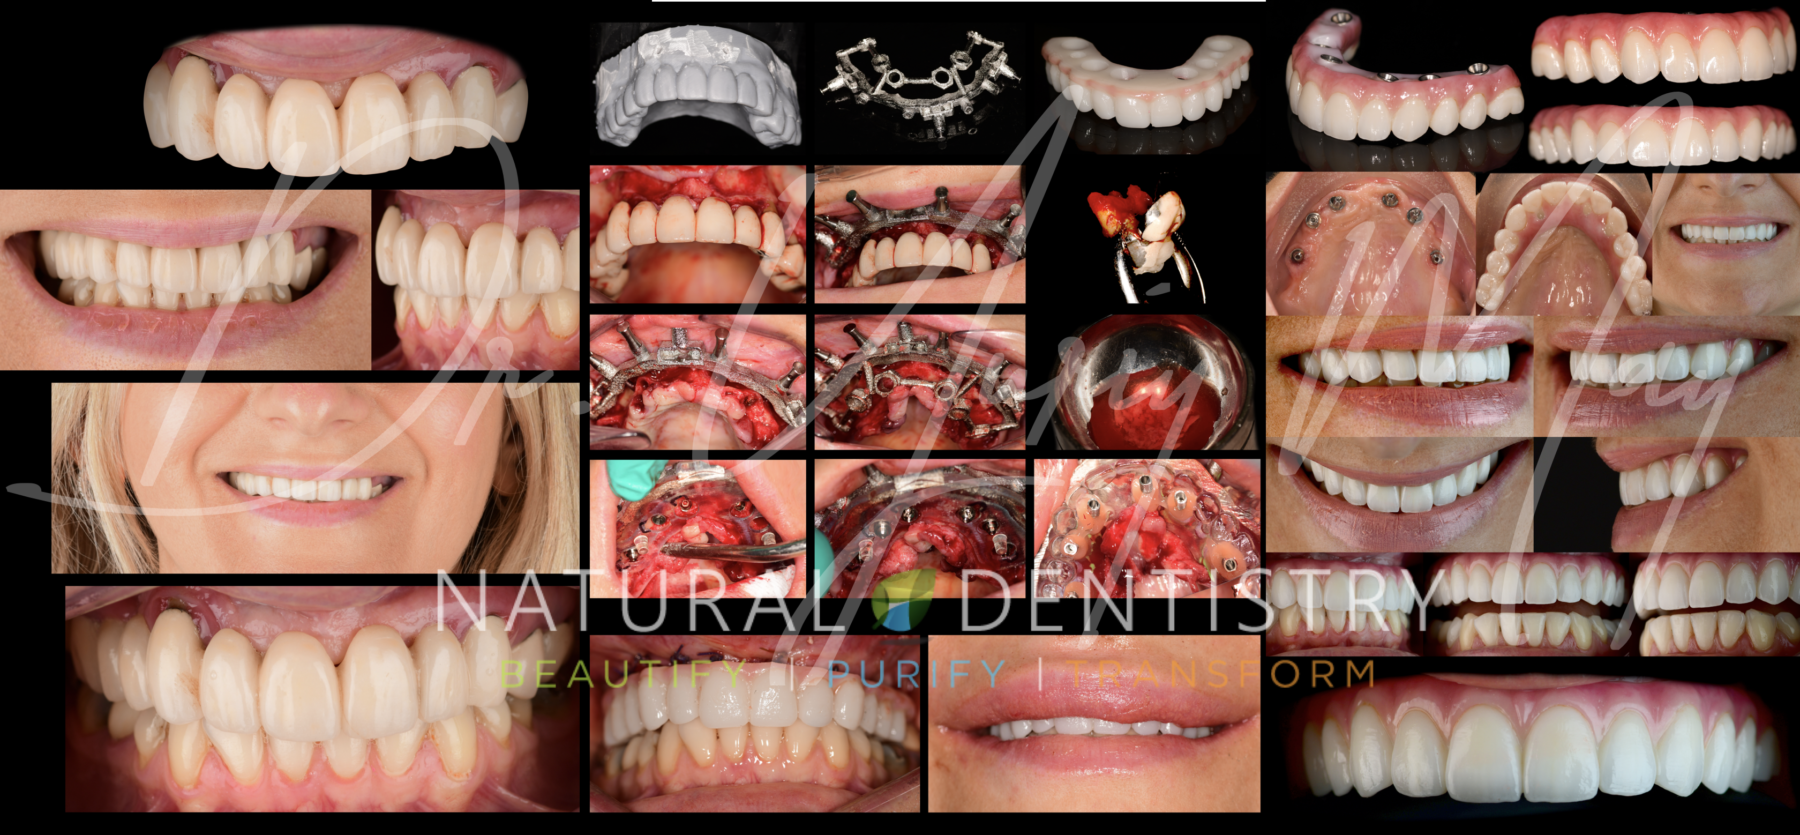 All on 6 Dental Implants - Best Full Mouth Reconstruction Dentist CT NY NJ Dr. May